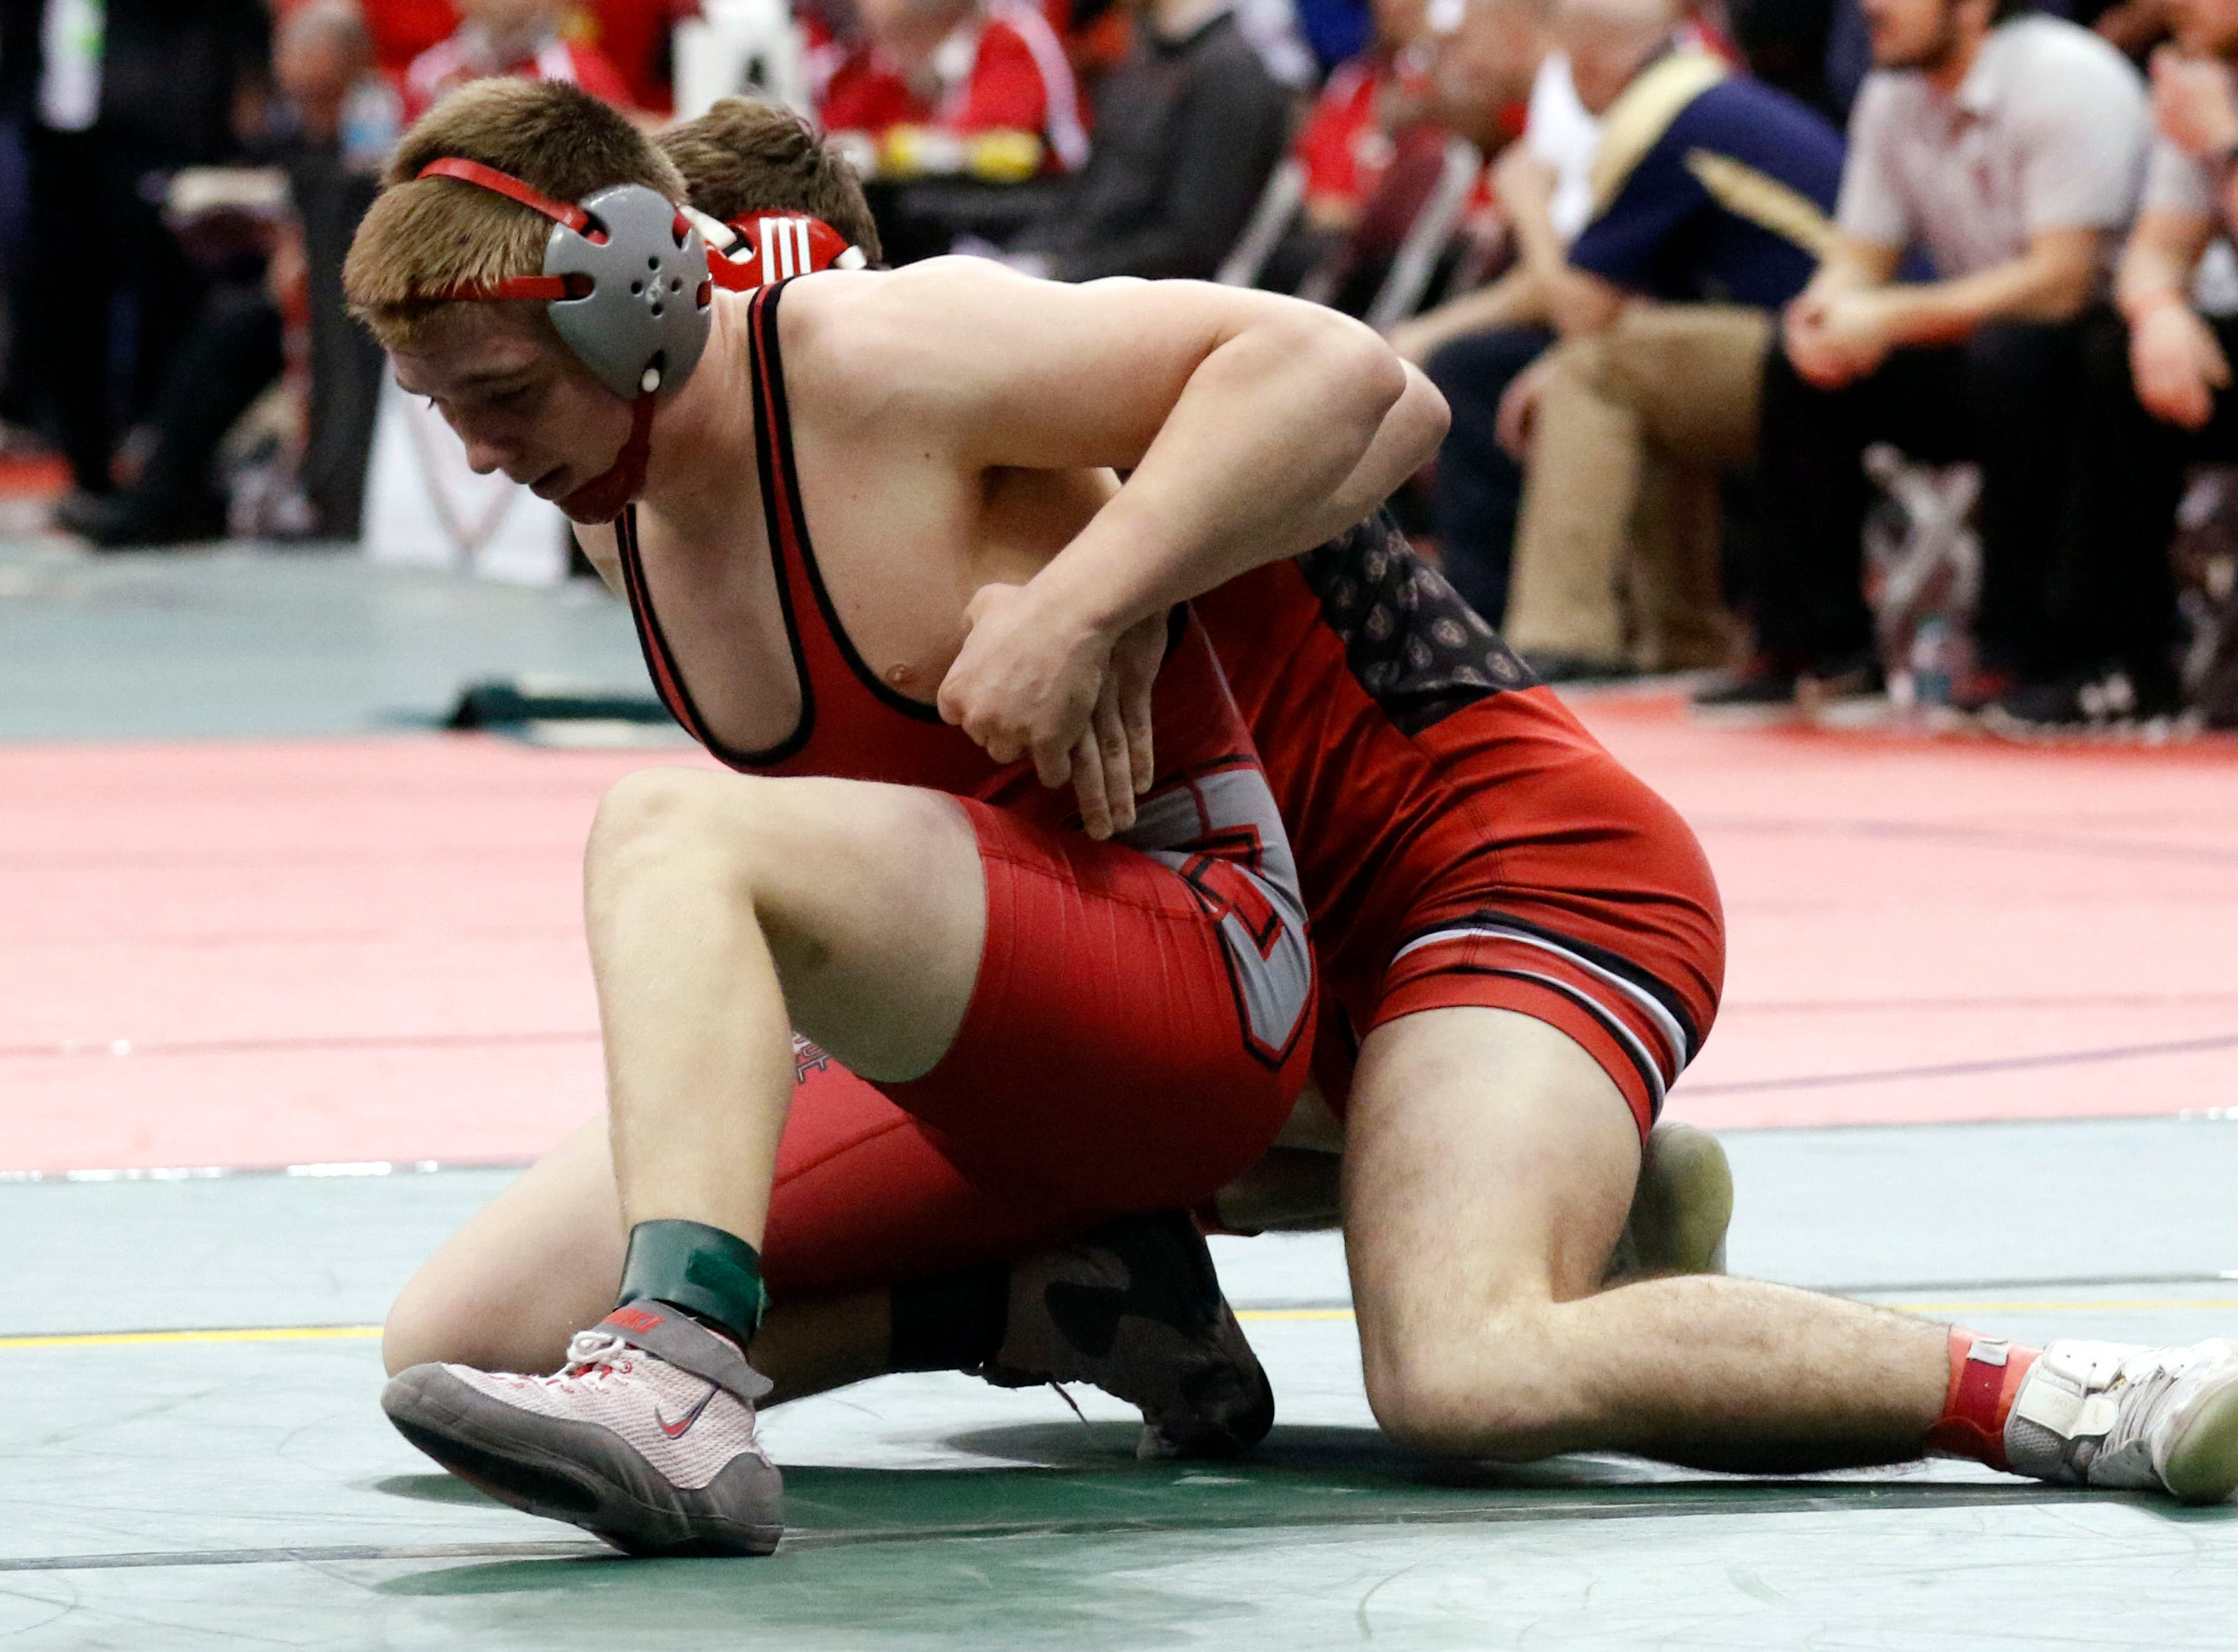 Bellvue's Collin Corapi wrestles during the State Wrestling Tournament Thursday, March 7, 2019, at the Jerome Schottenstein Center at Ohio State University in Columbus.